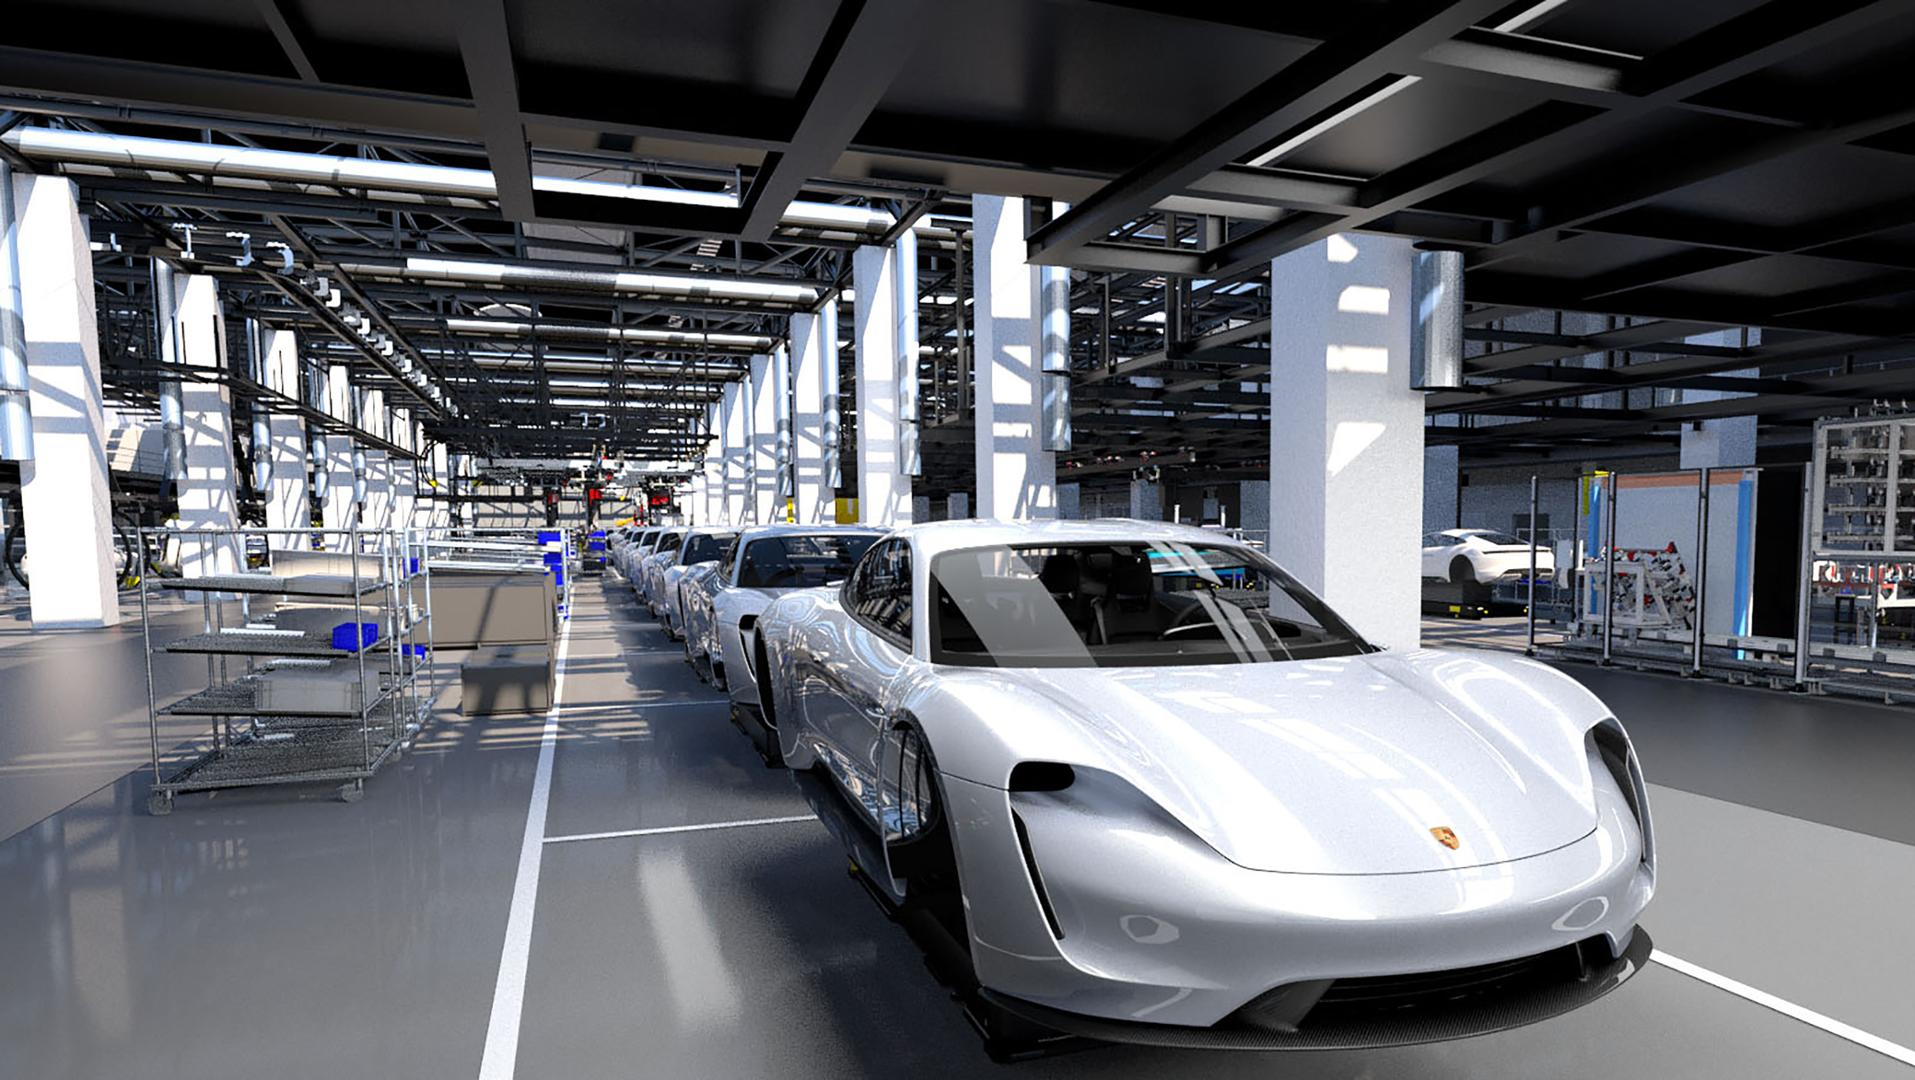 2020 Porsche Taycan price, specs and release date | carwow